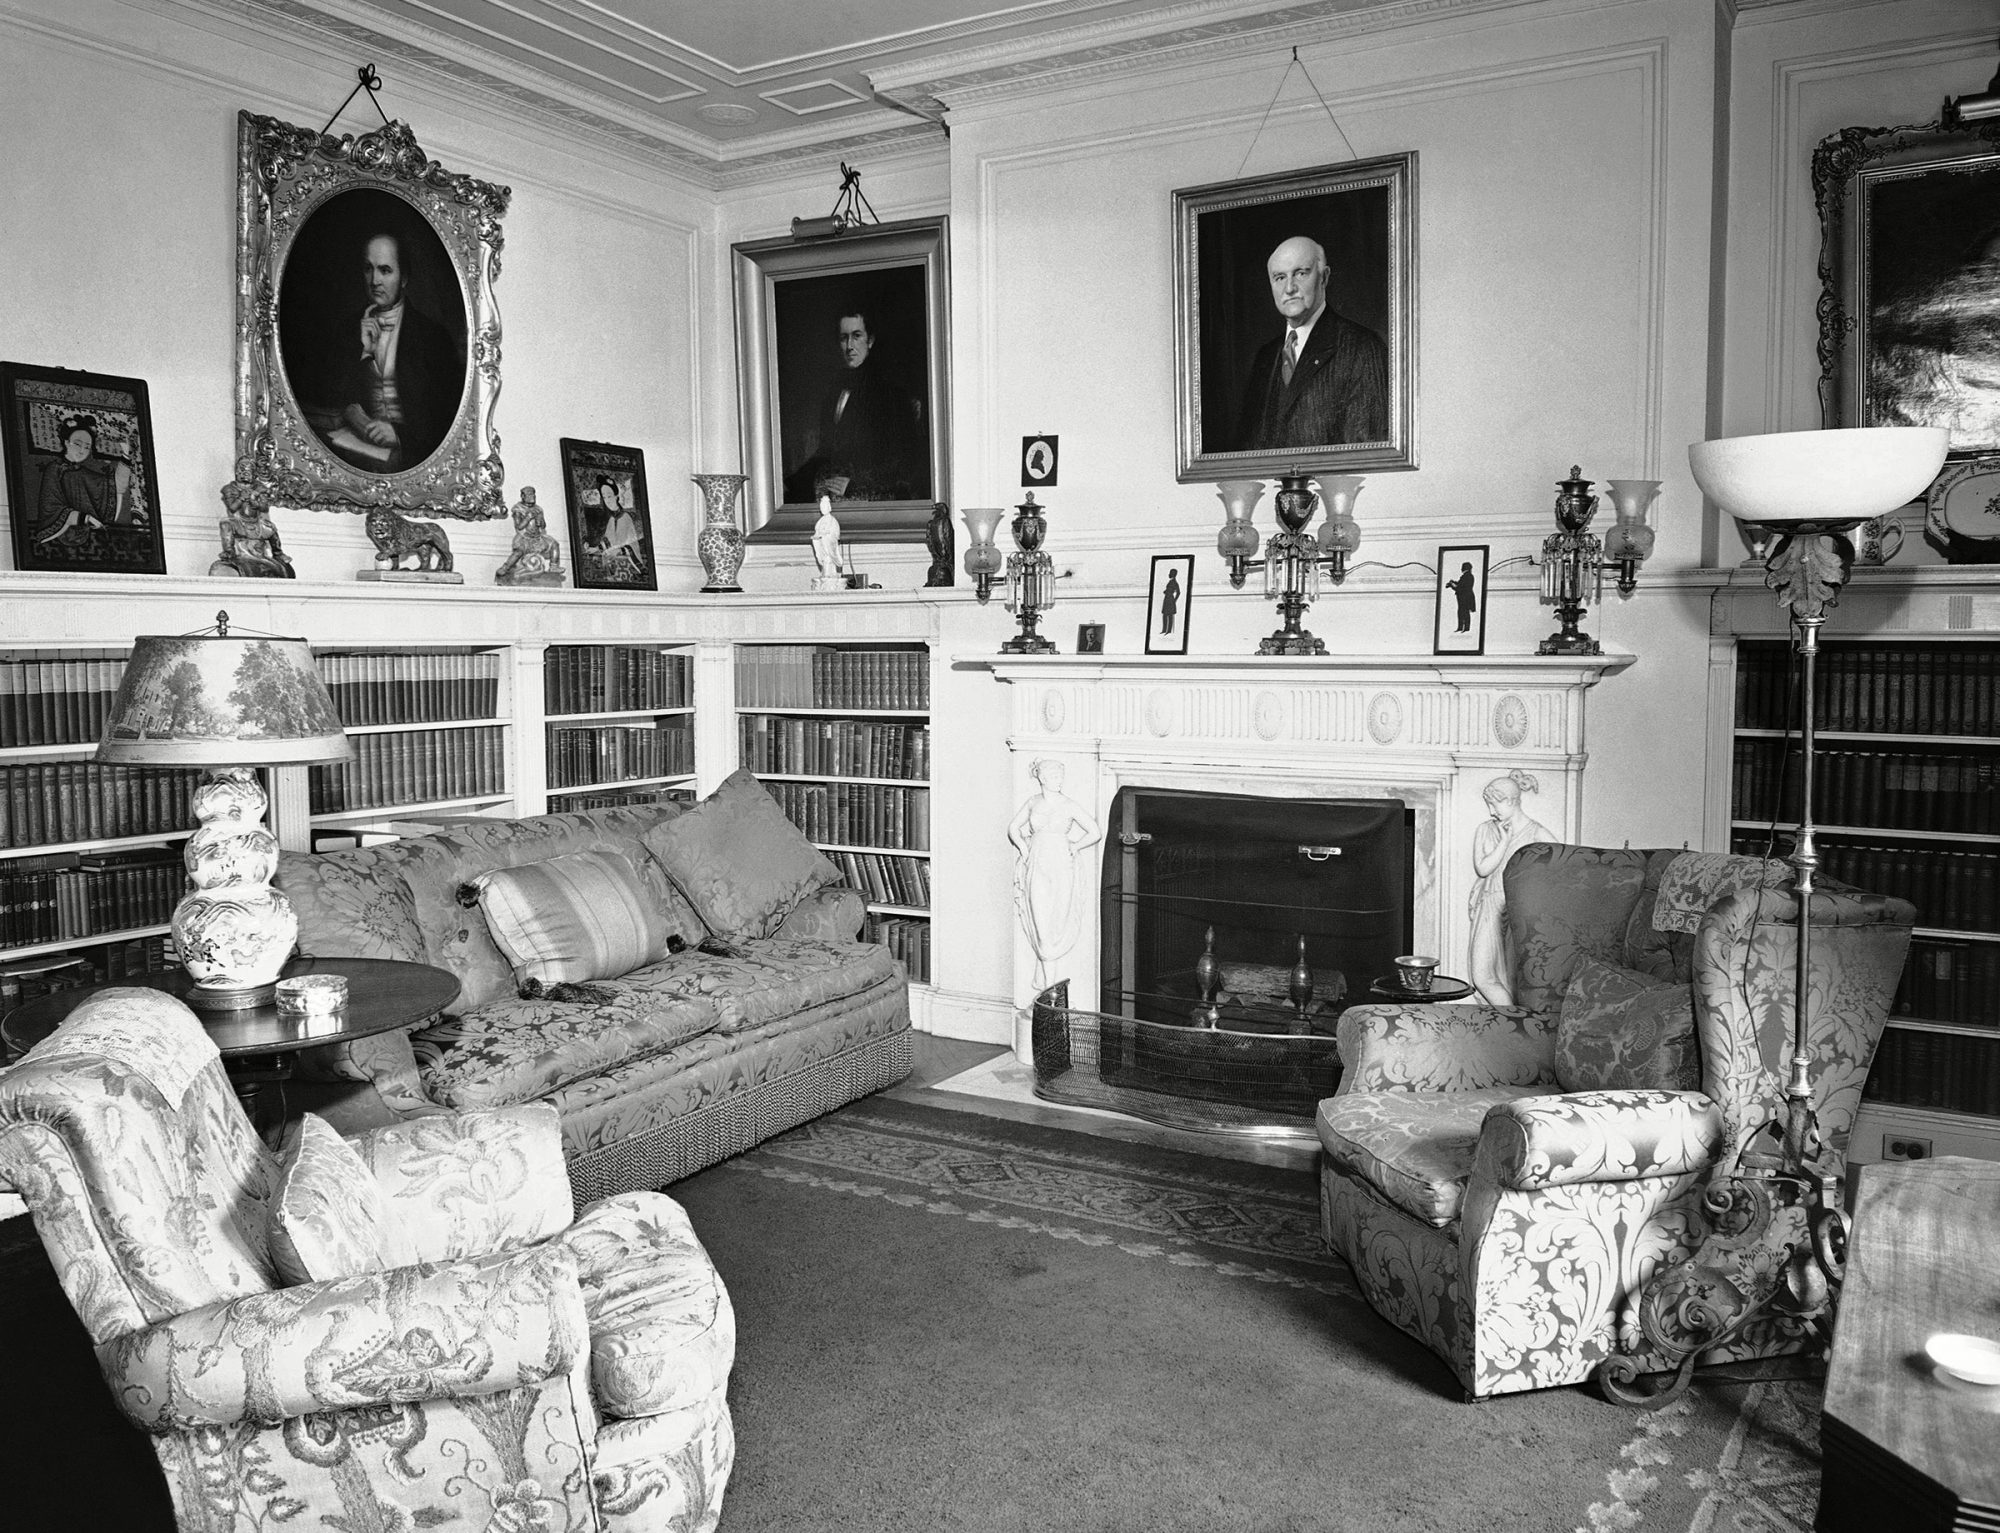 The corner of the spacious library adjoining the master bedroom at Blair House is shown, . It is used as a sitting room by royal visitors Blair House 1942, Washington, USA